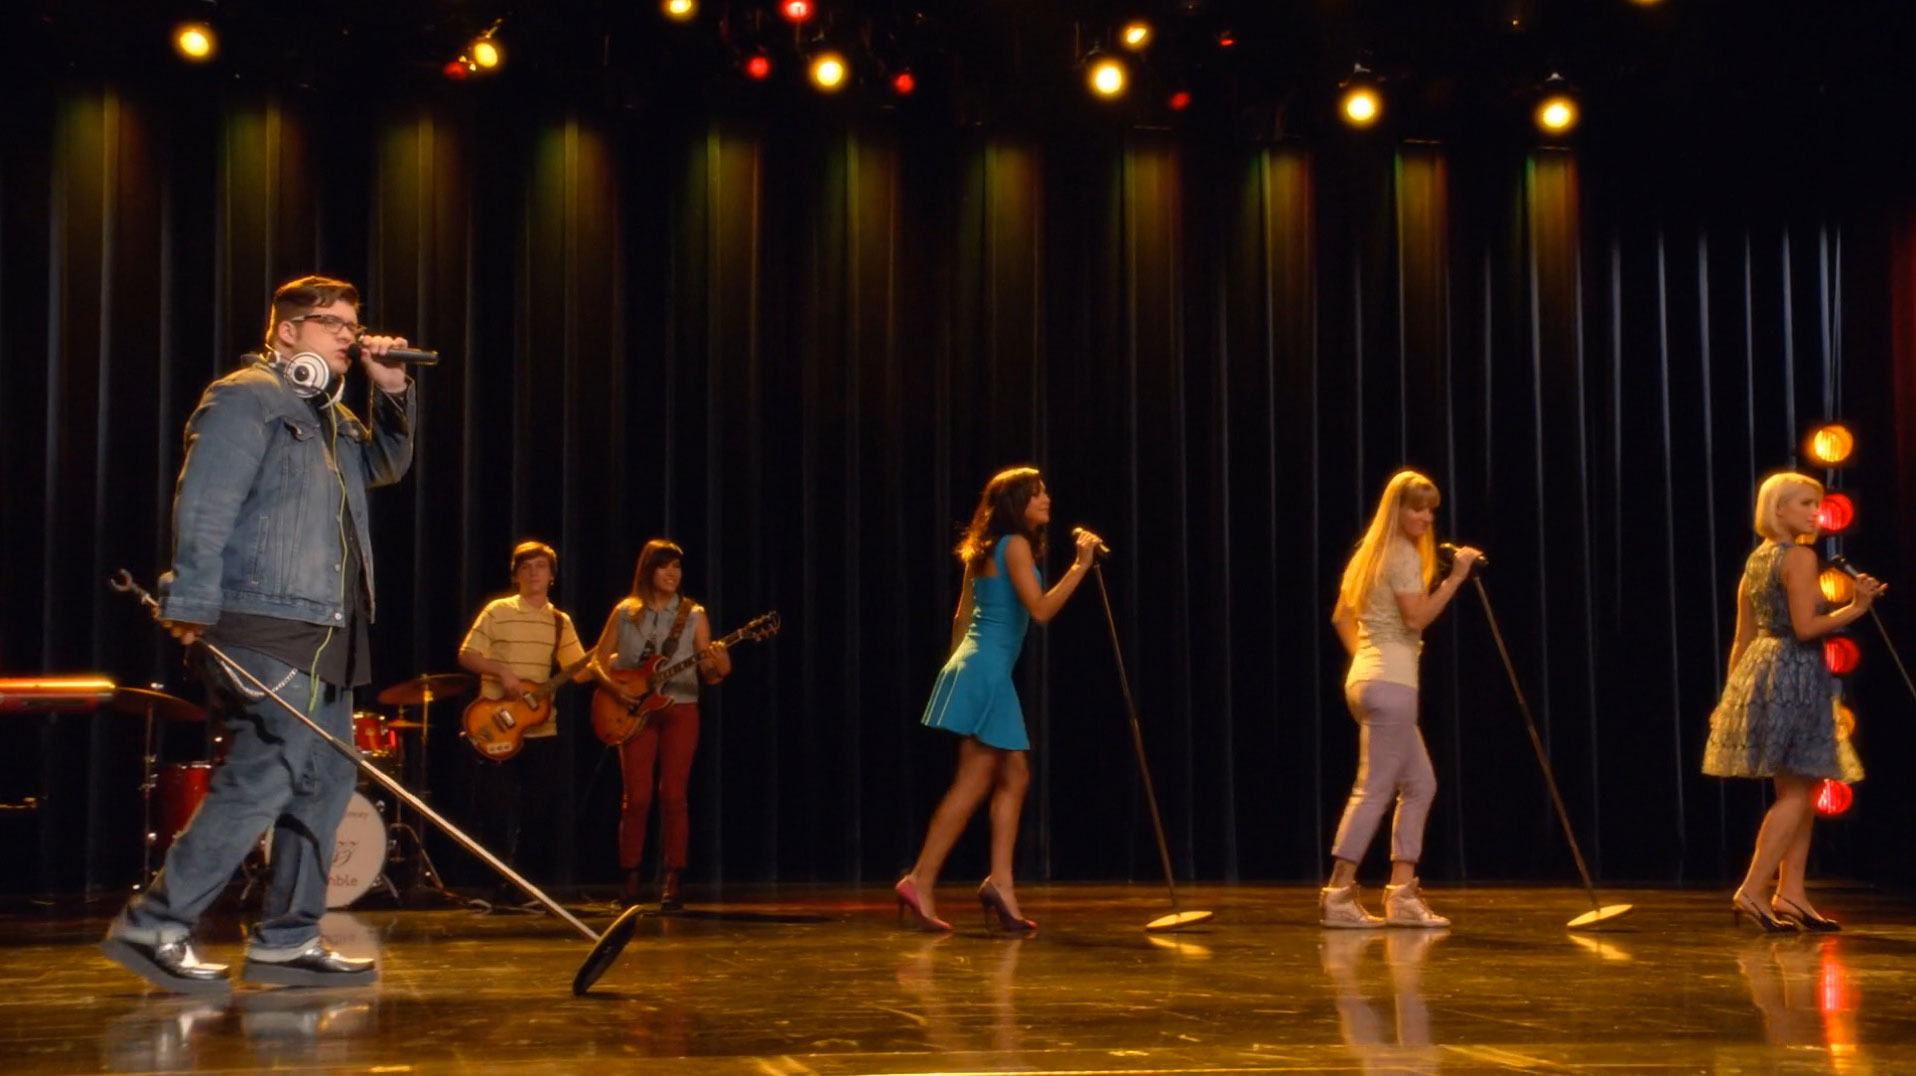 Mustang Sally Glee Tv Show Wiki Fandom Powered By Wikia